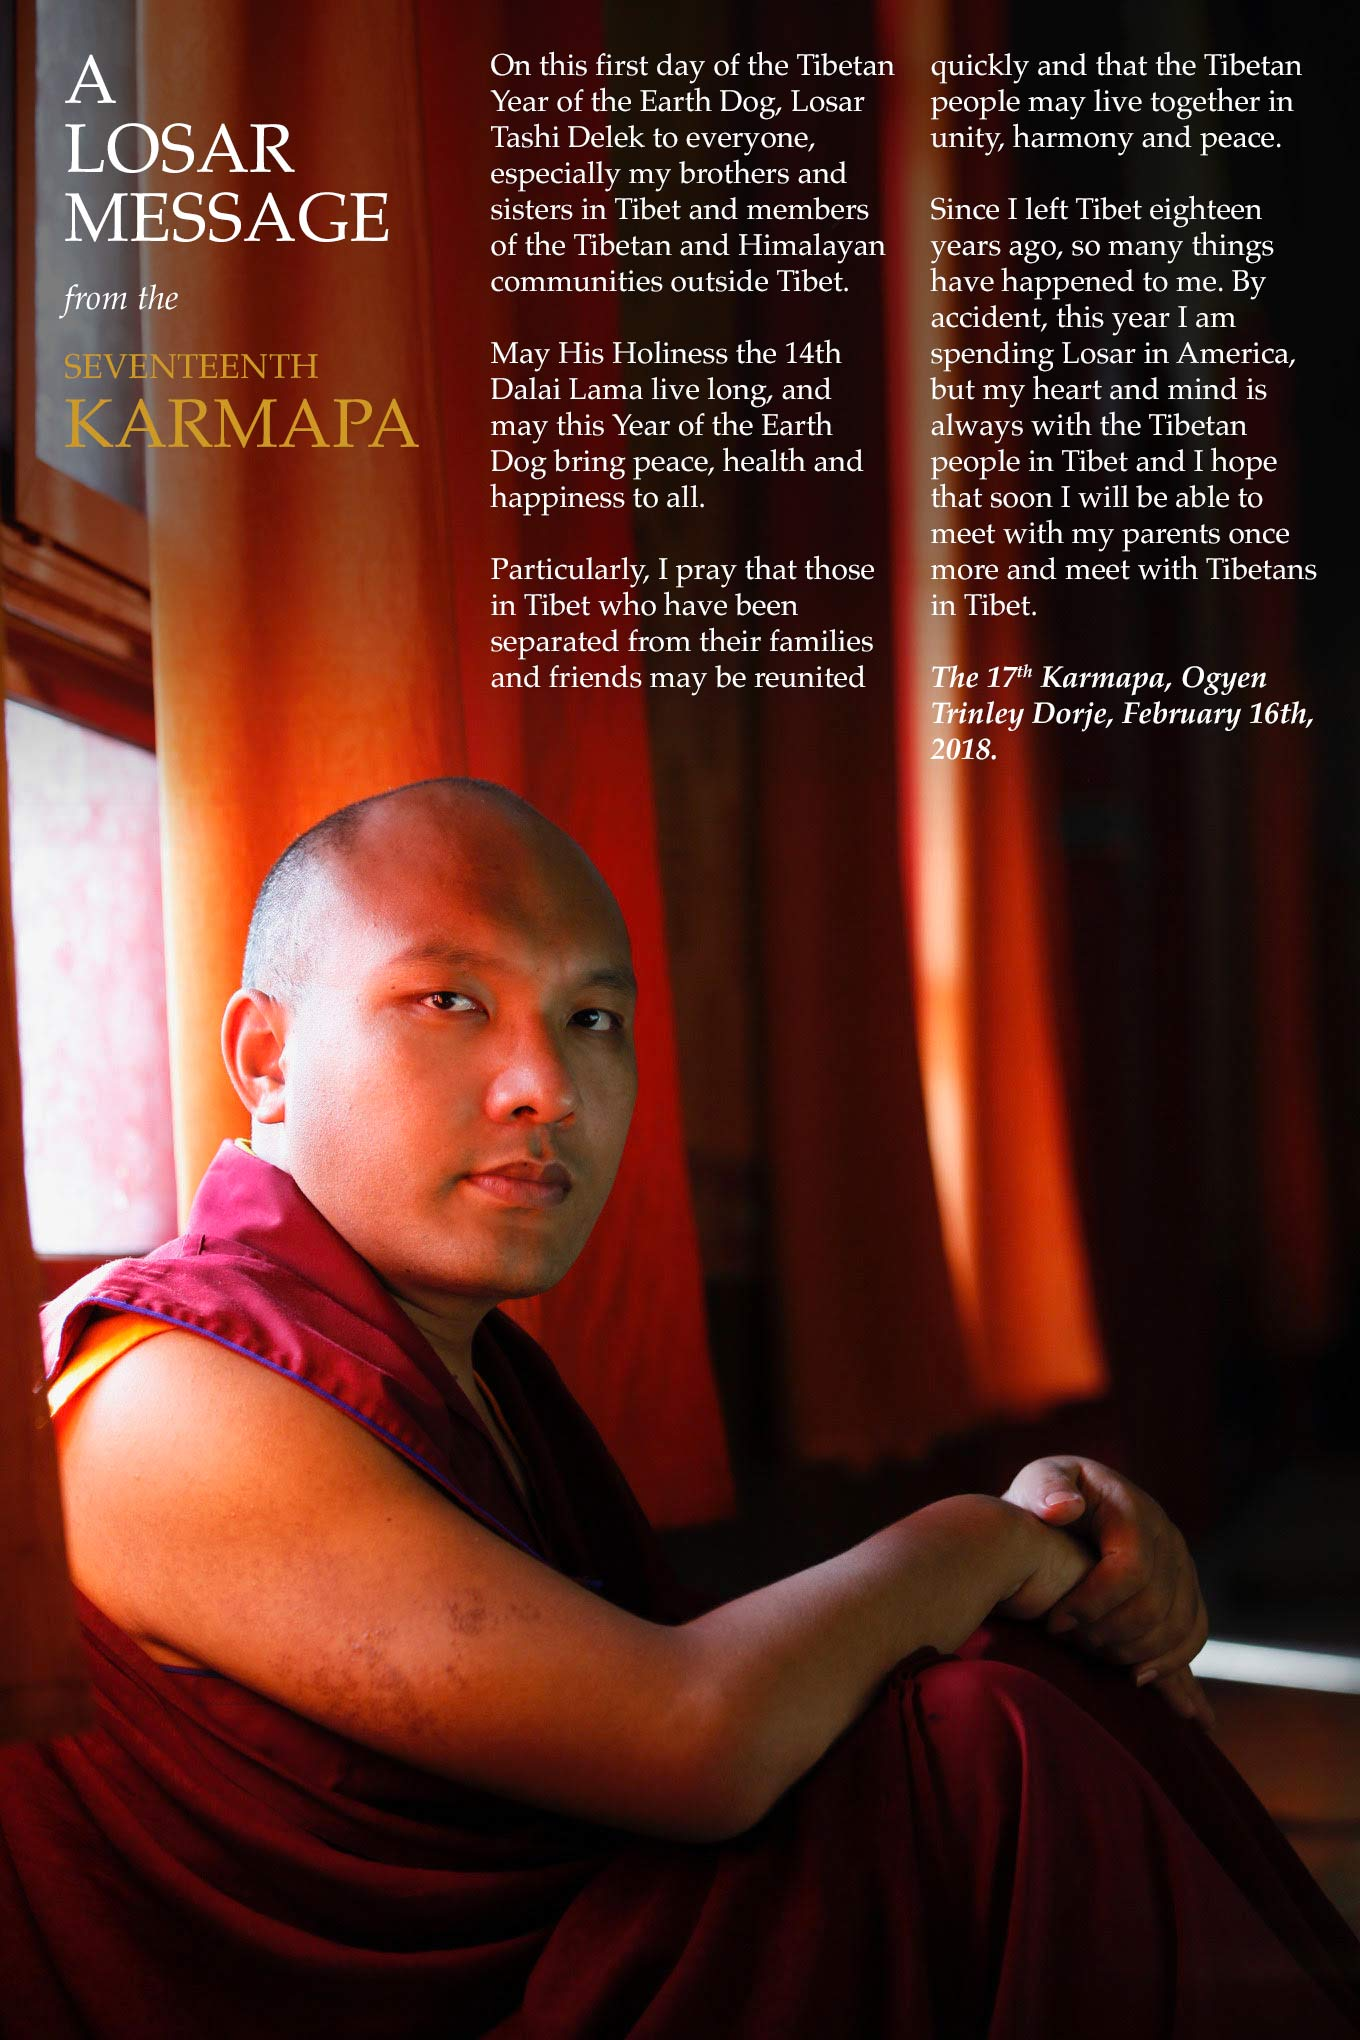 A Losar Message from the Gyalwang Karmapa | Karmapa – The